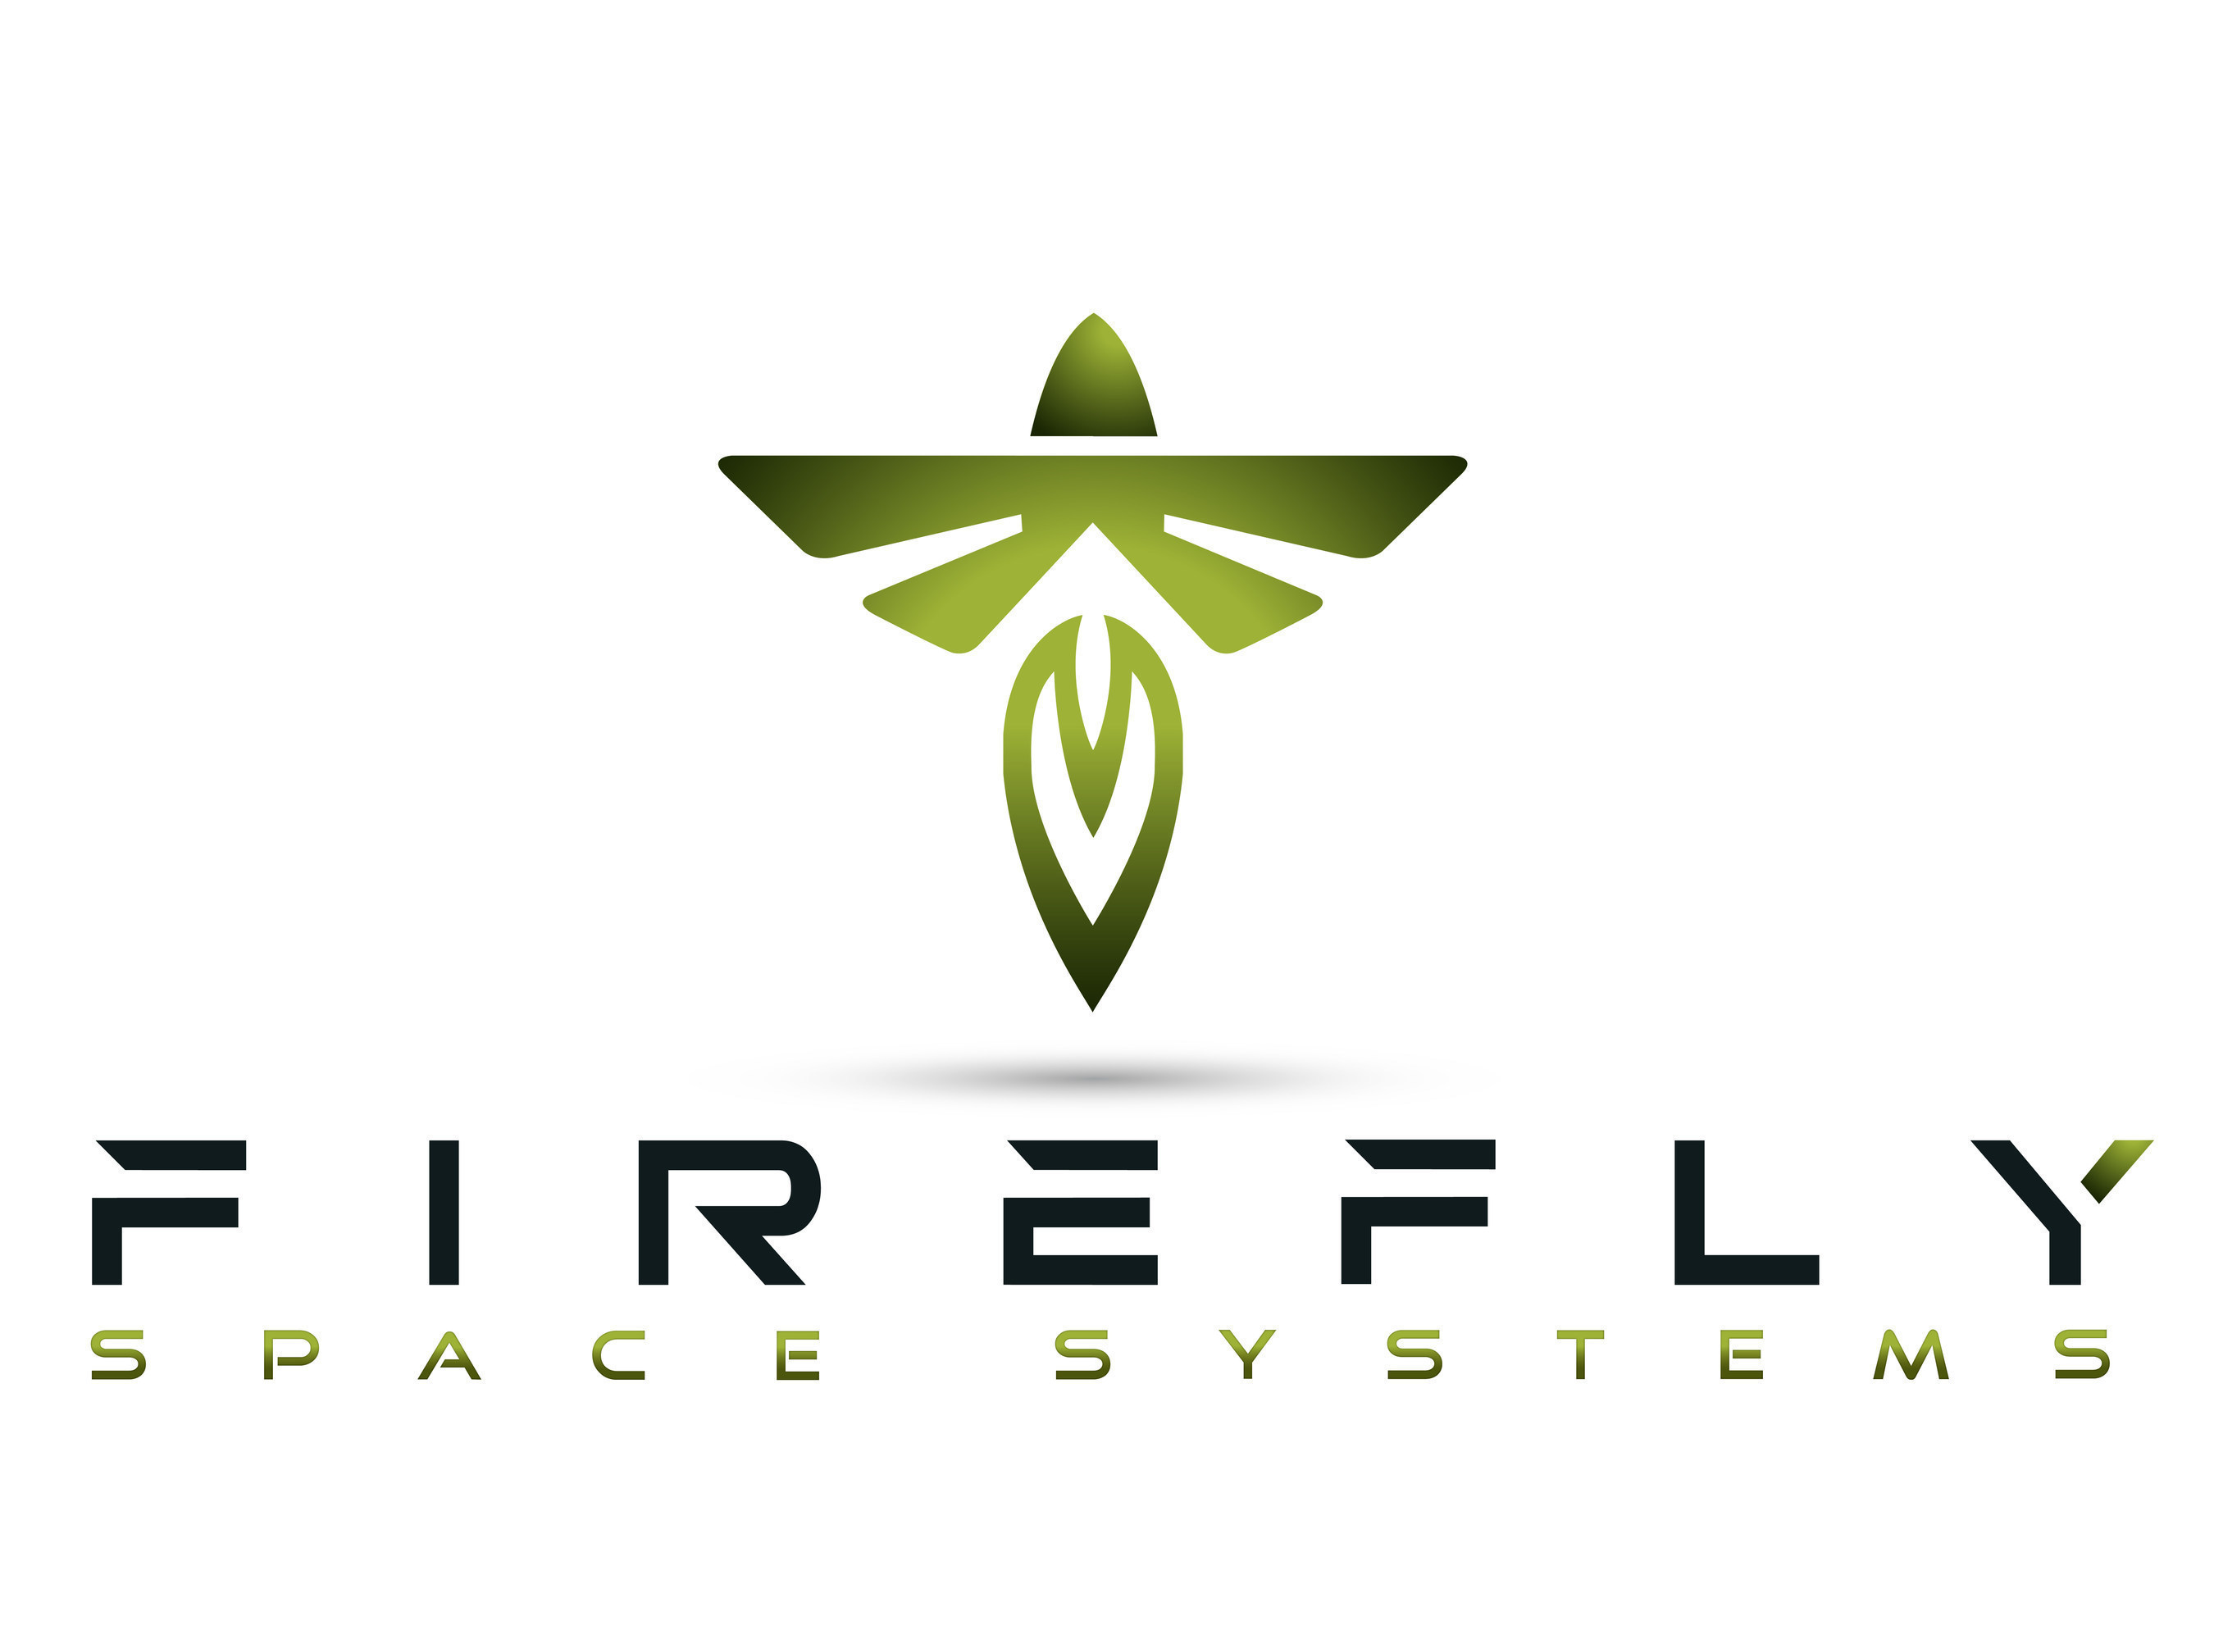 Firefly Space Systems logo